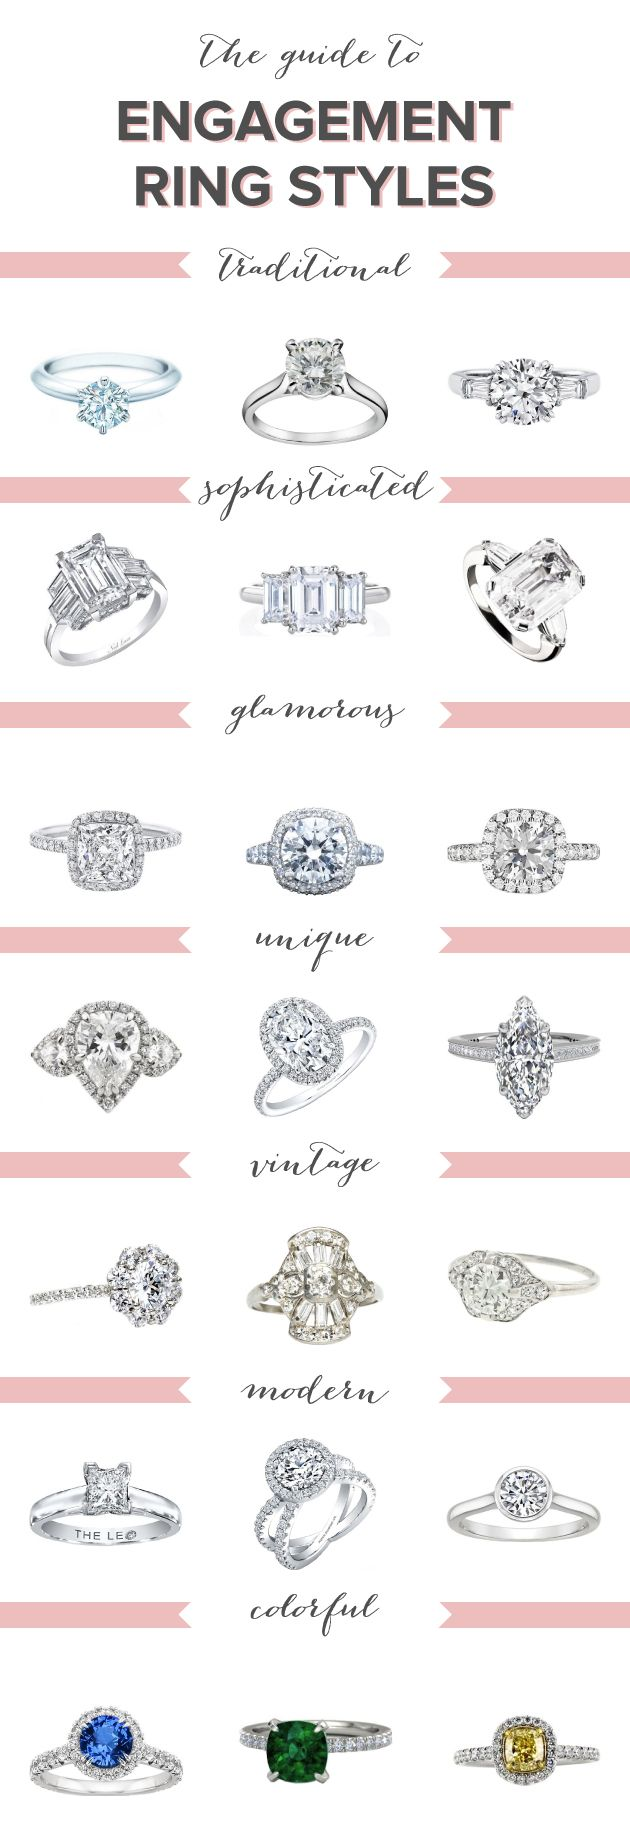 The ultimate guide to engagement ring styles also best images on pinterest engagements rh